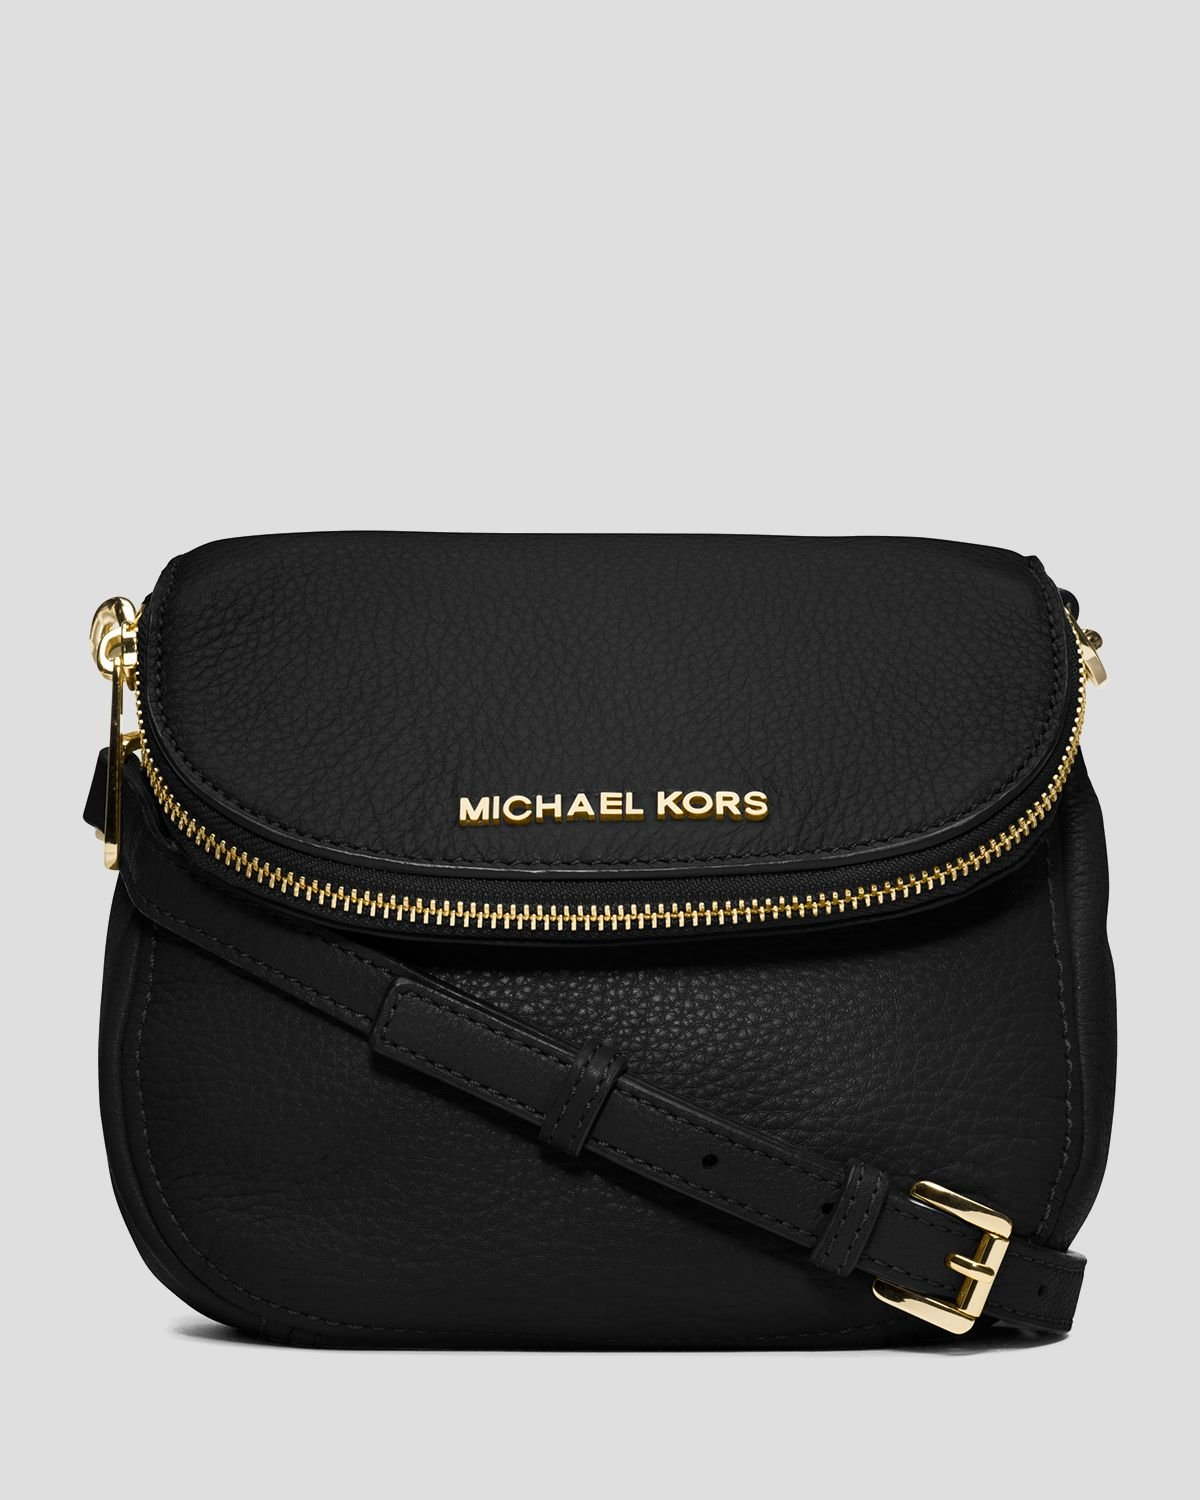 ff883a0a2f6a Michael Kors Crossbody Bags Cheap | Stanford Center for Opportunity ...